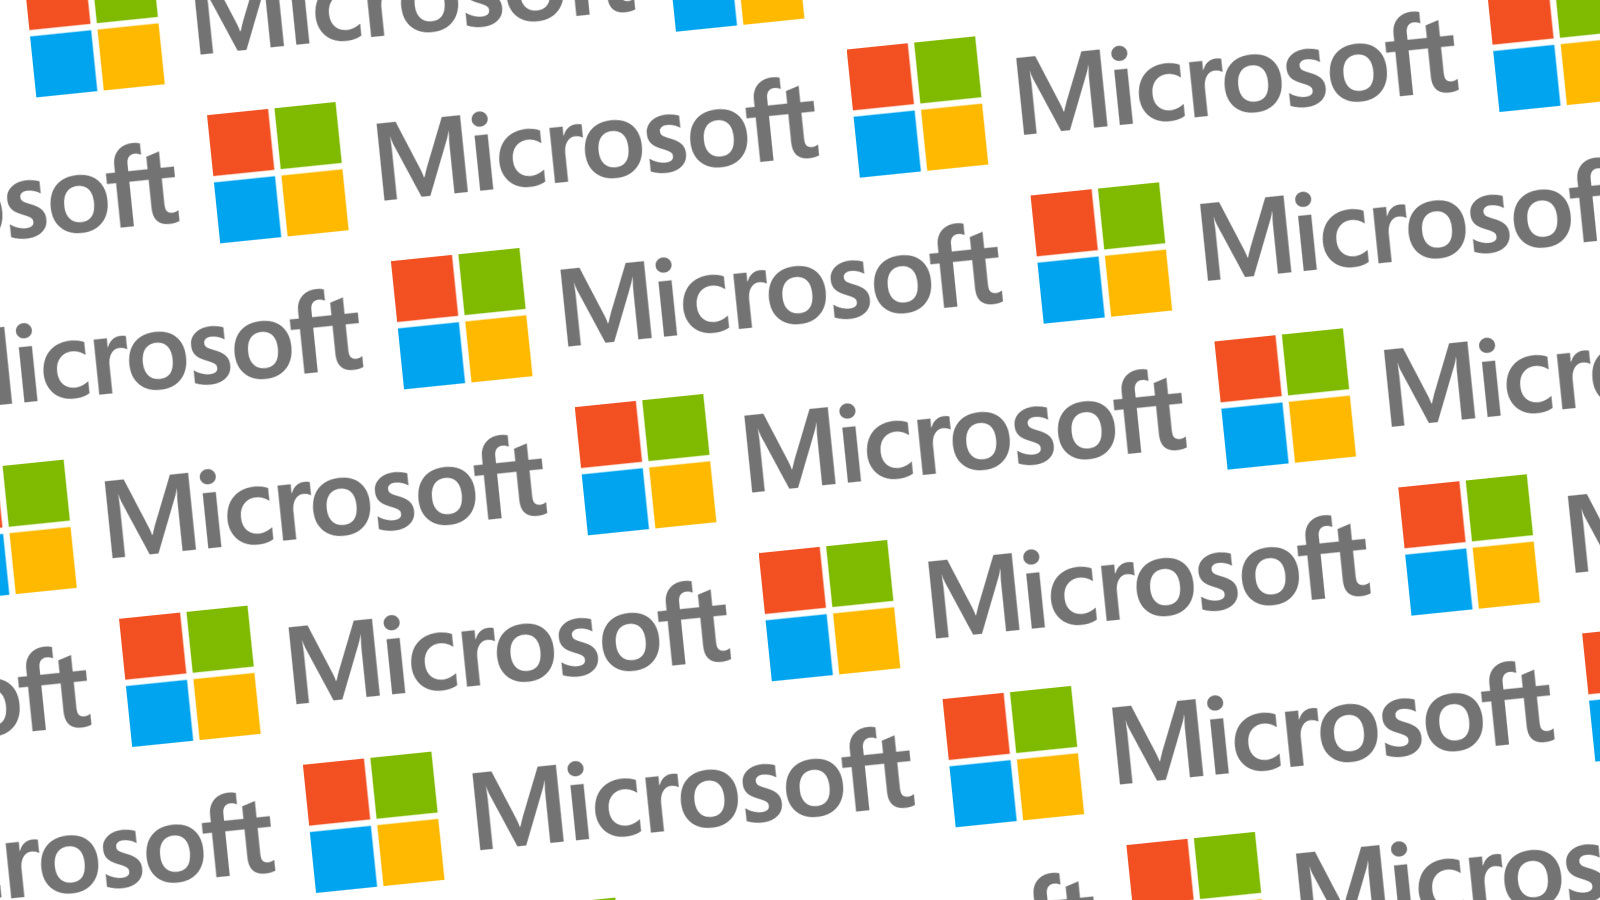 The ultimate guide to Microsoft (plus advice on how to get